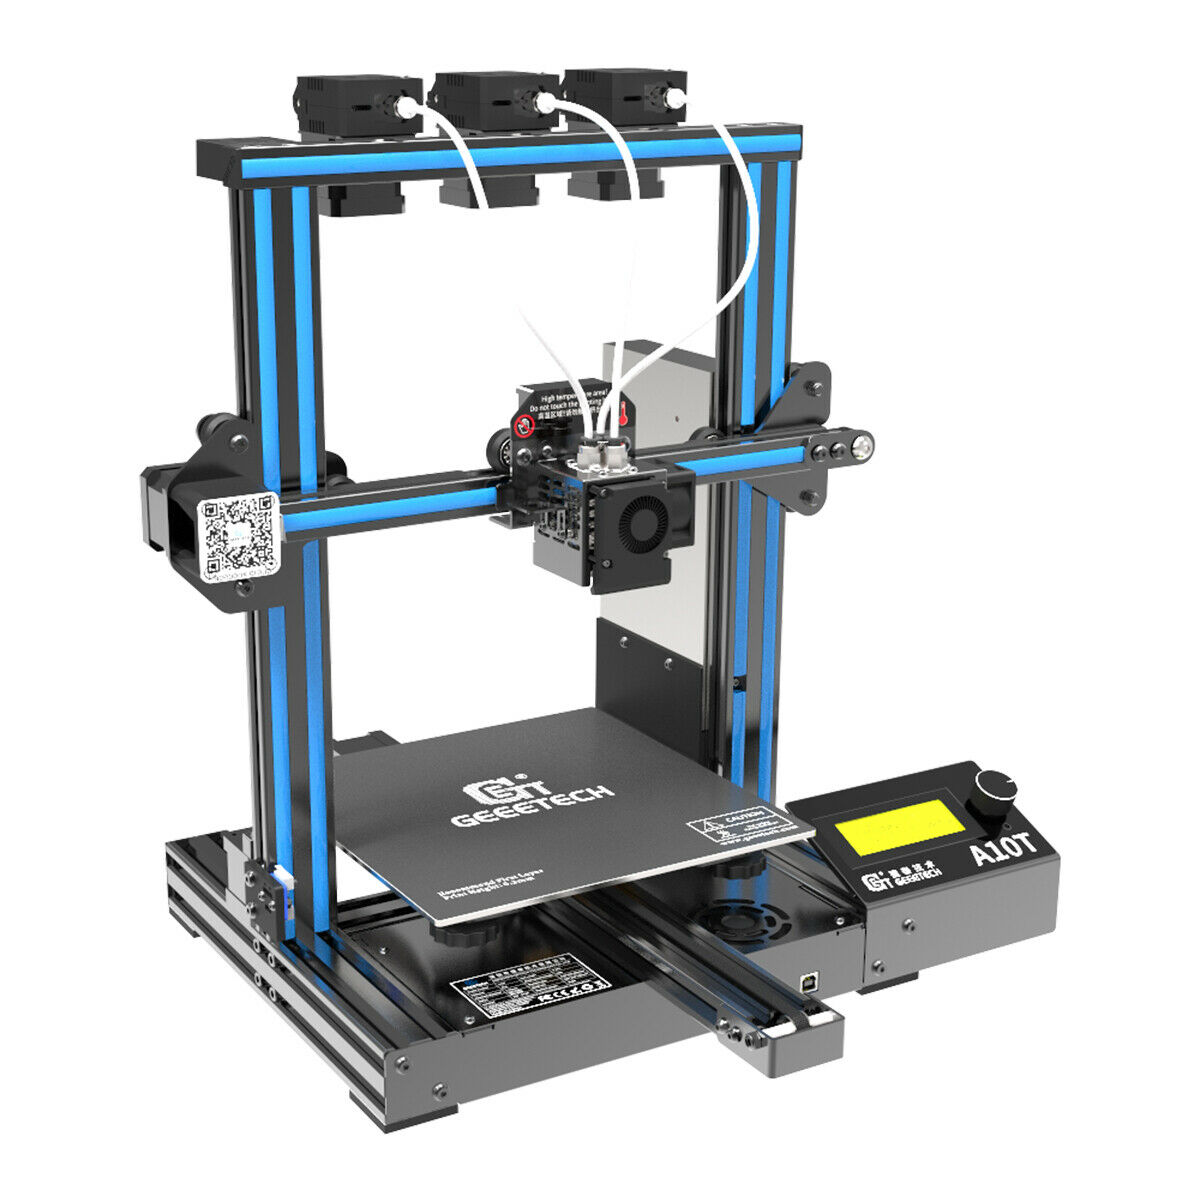 Used/Broken 3D Printer From US- Geeetech A10T 3 in 1 Mix-color